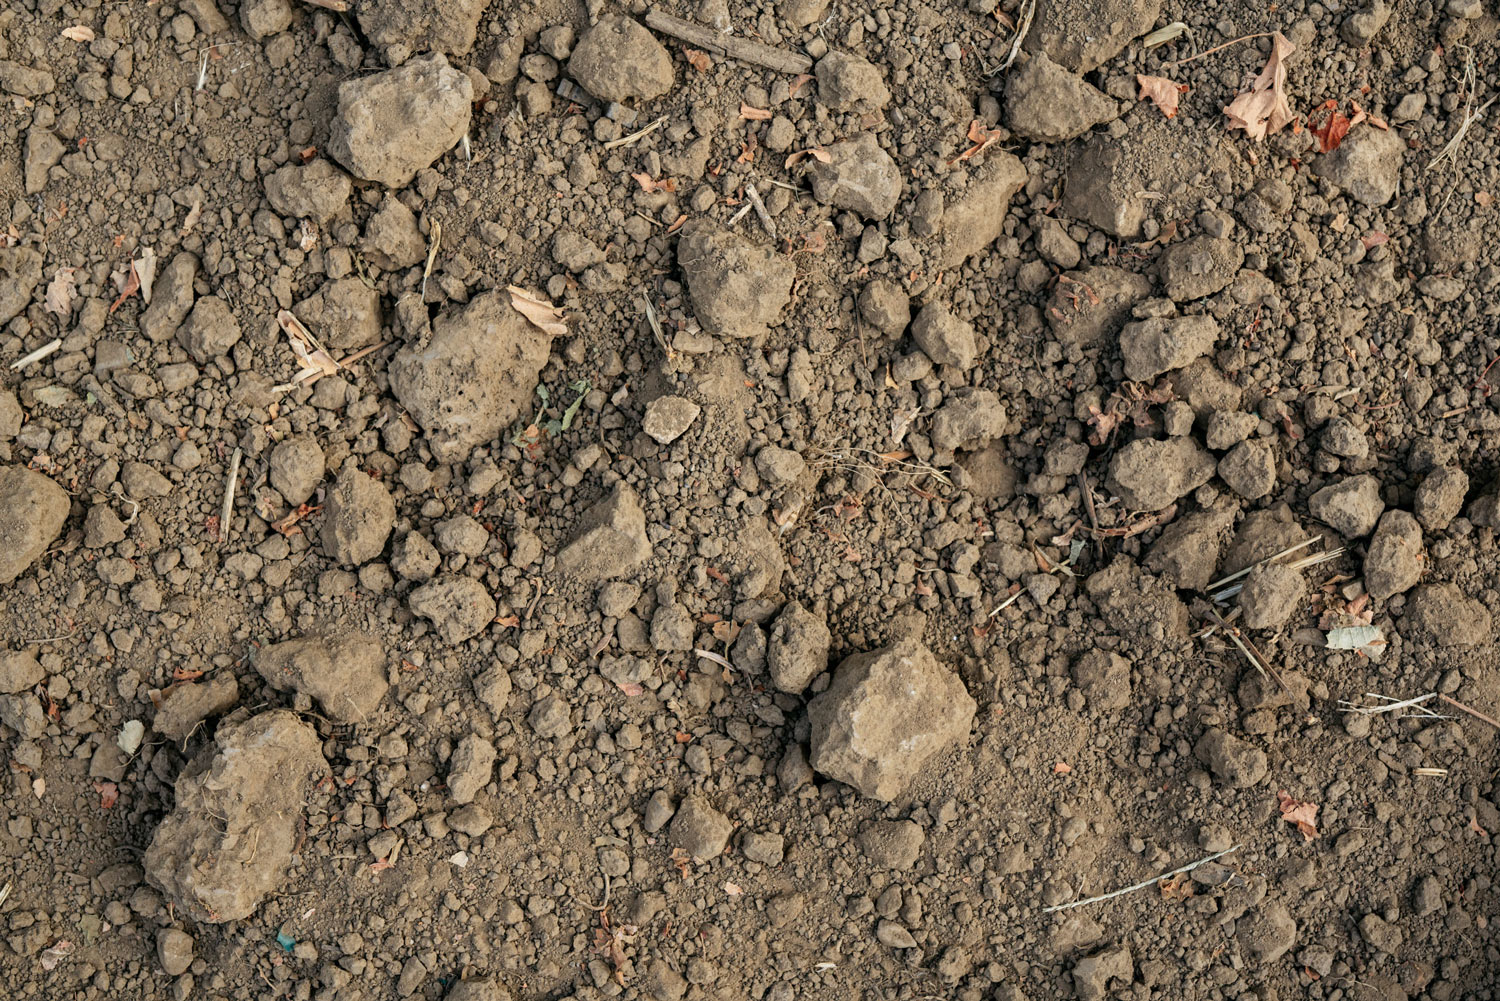 Close-up of the soil and rocks in the Trailside Vineyard